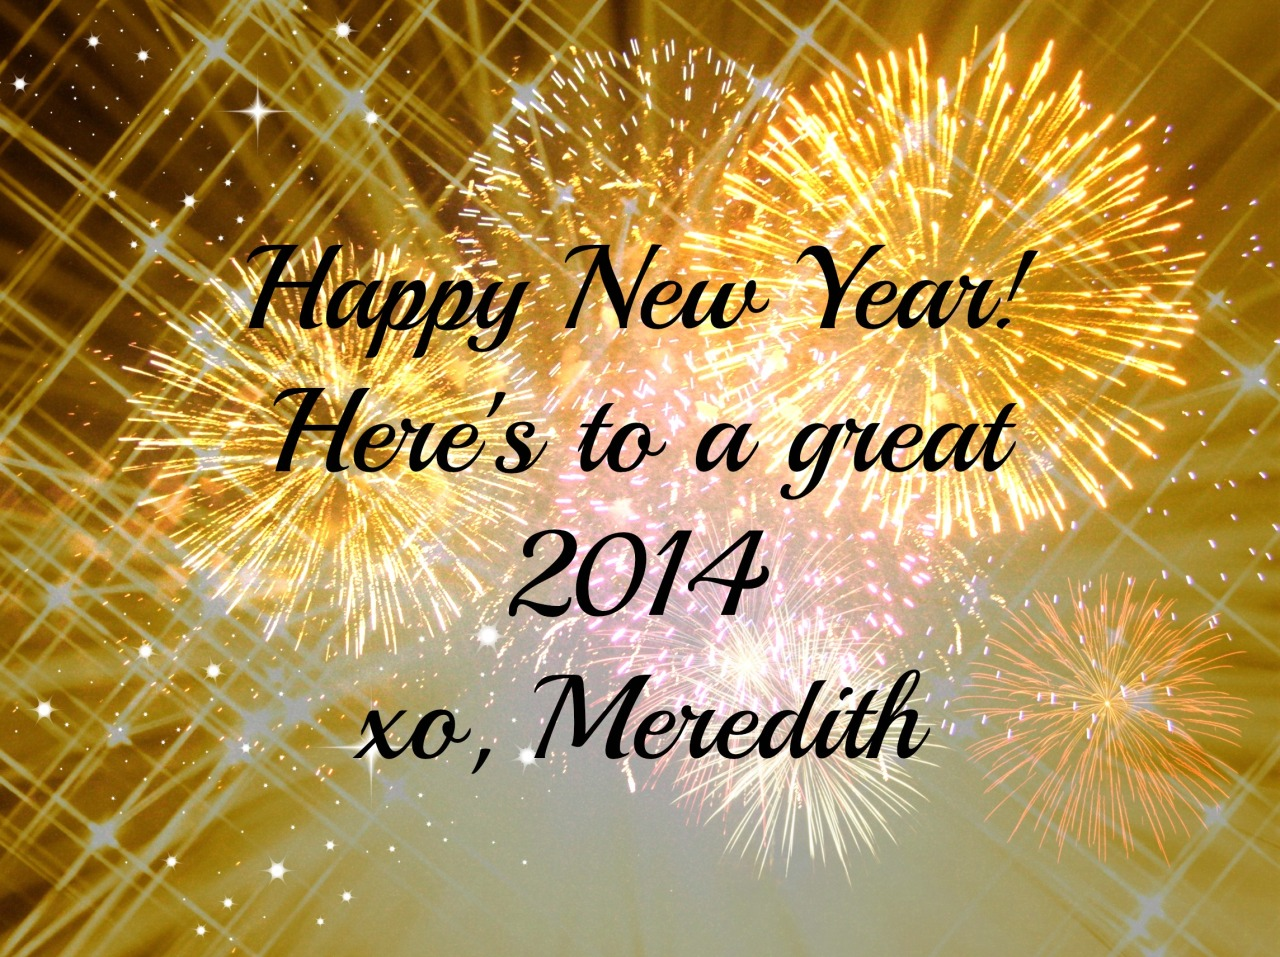 Happy New Year from MeredithTested.wordpress.com